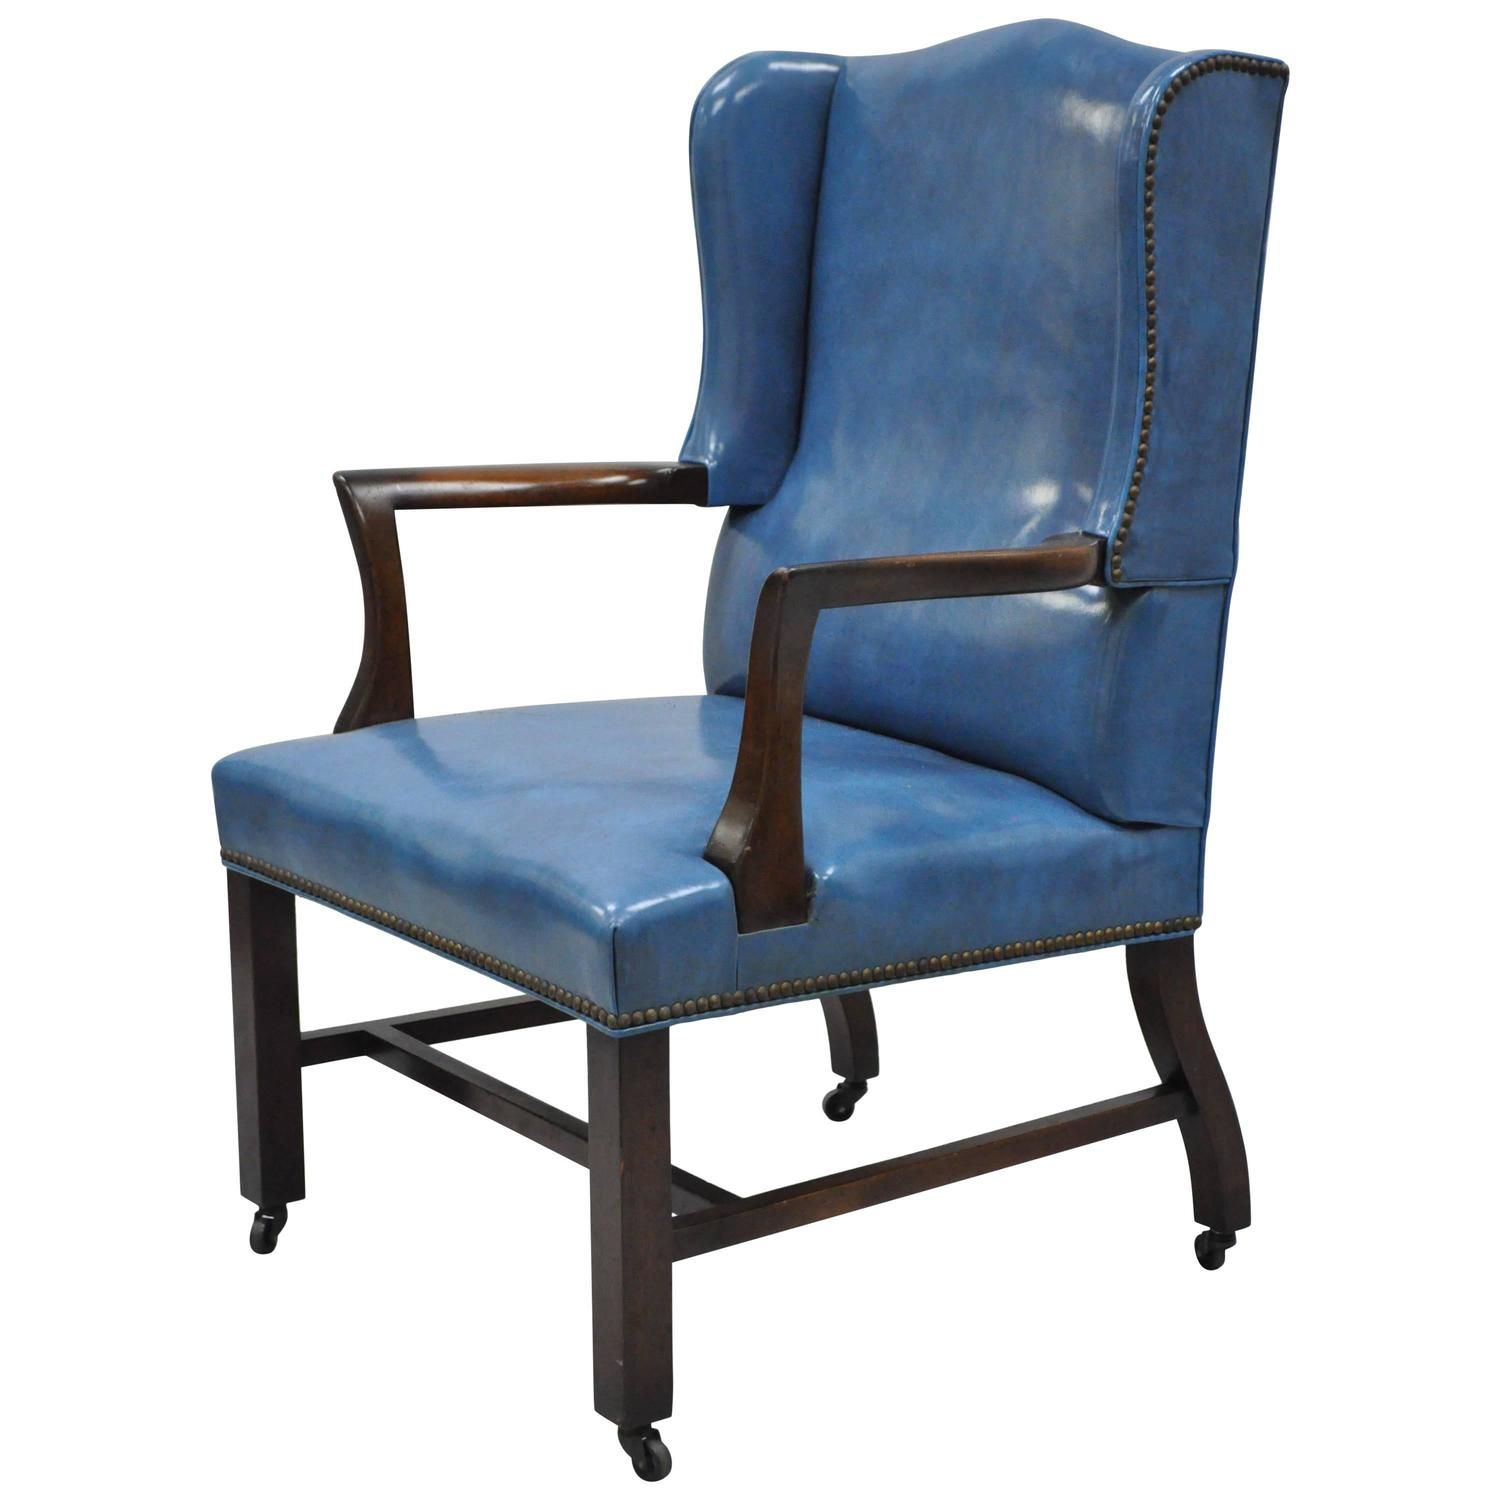 Mid 20th Century Blue Leather fice Desk Chair on Casters After